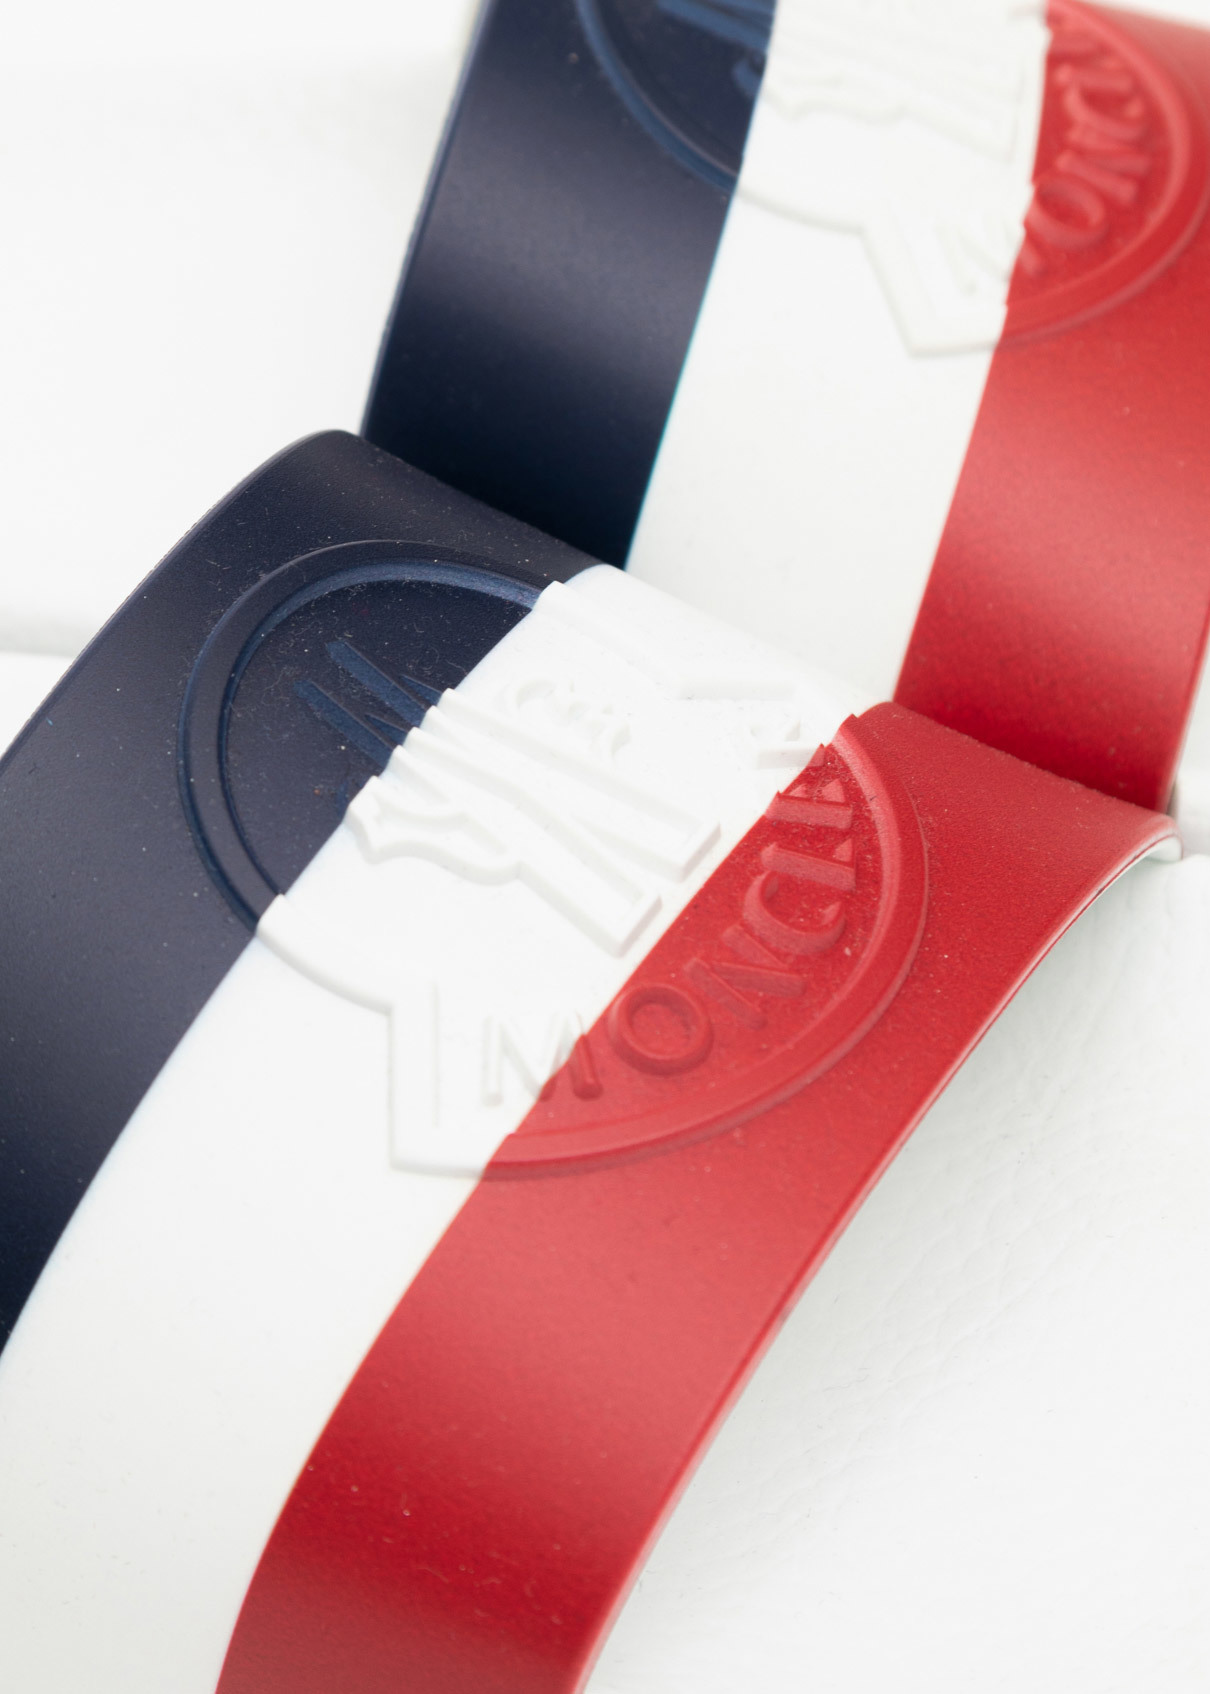 <p>Шлепанцы</p> MONCLER